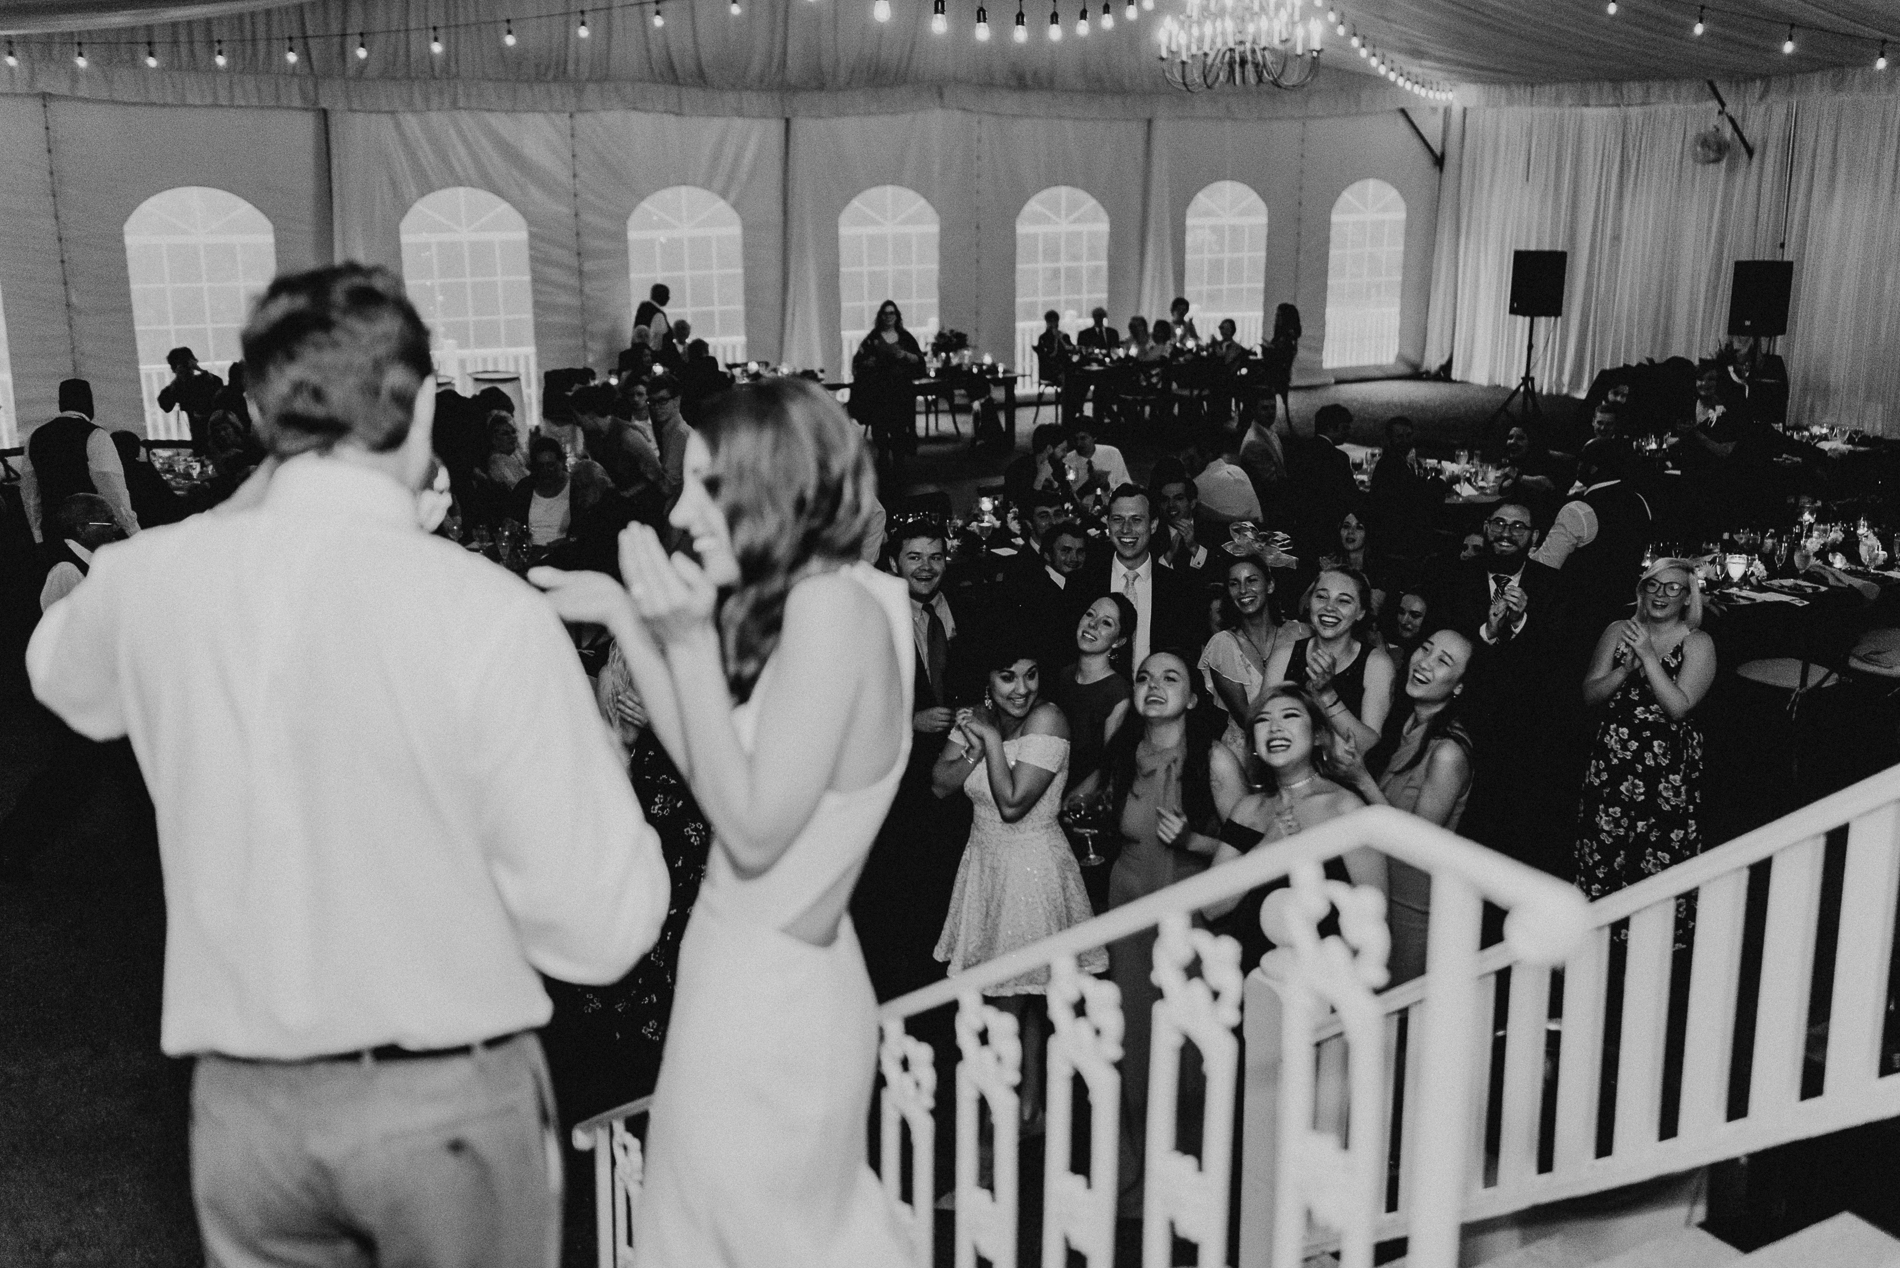 gabi and campbell east nashville wedding at riverwood mansion by wilde company-47.jpg